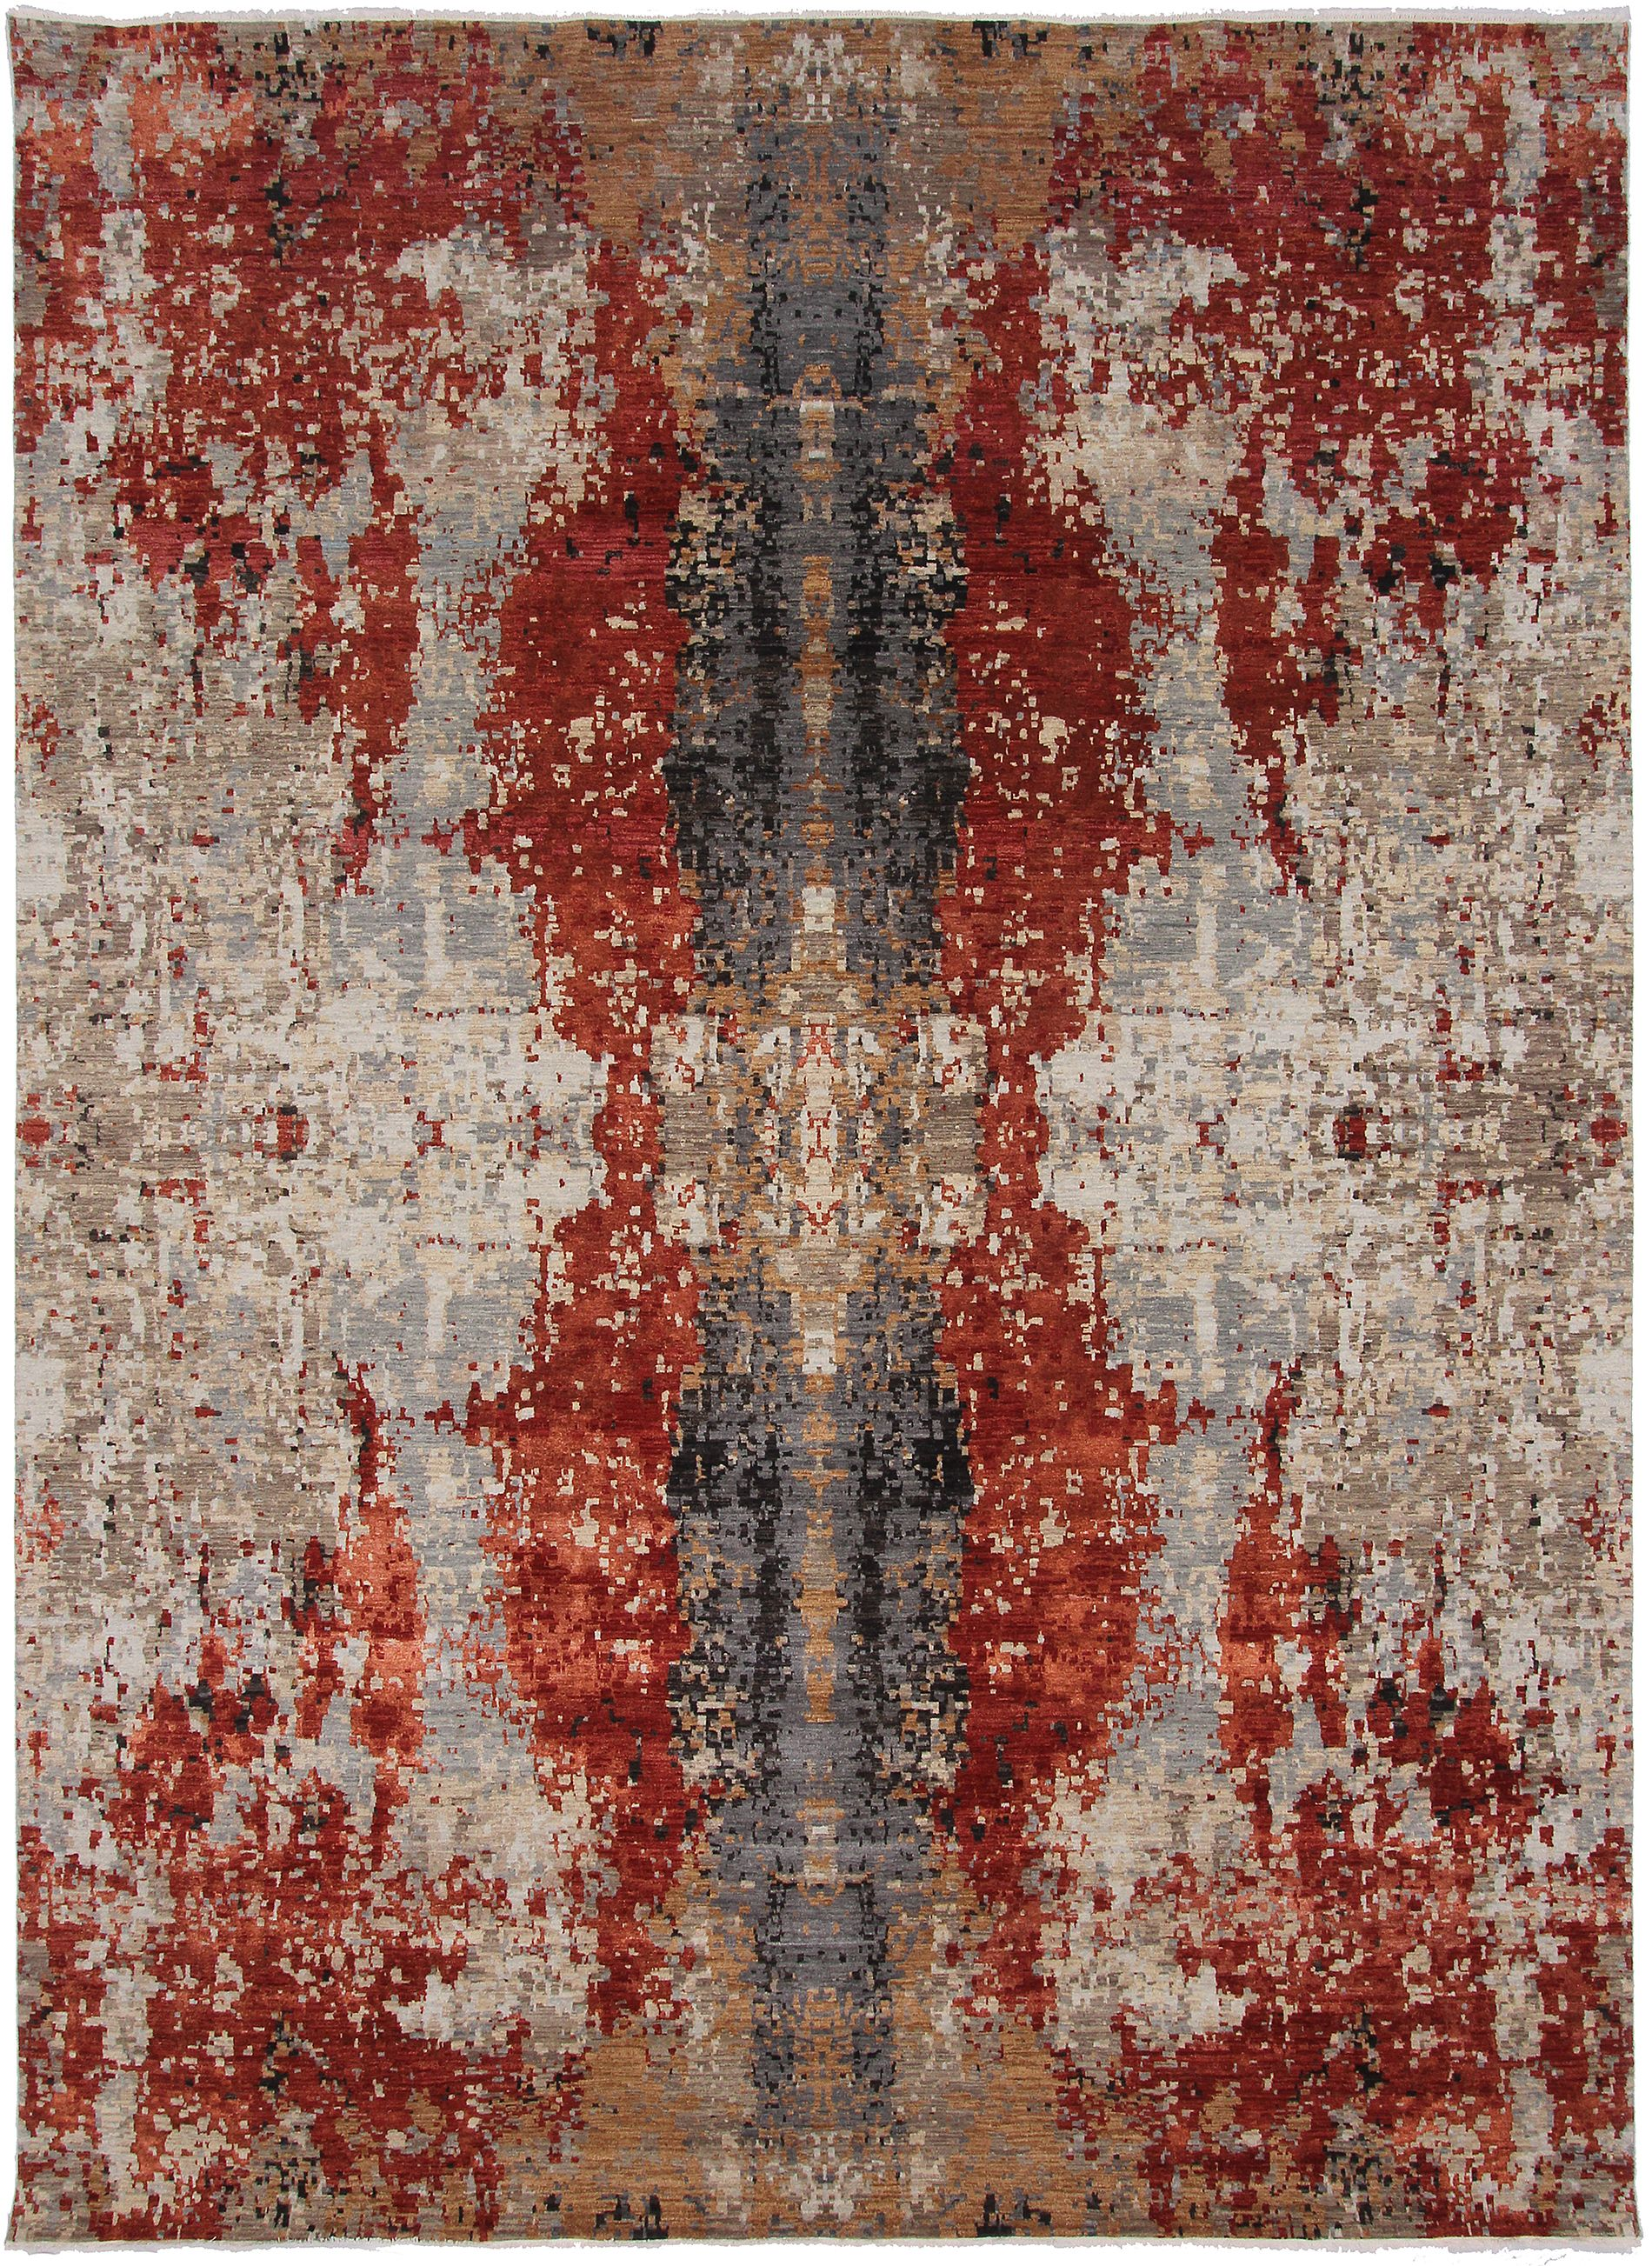 36525 Contemporary Indian Rugs Indian Rugs Style Carpet Rugs On Carpet